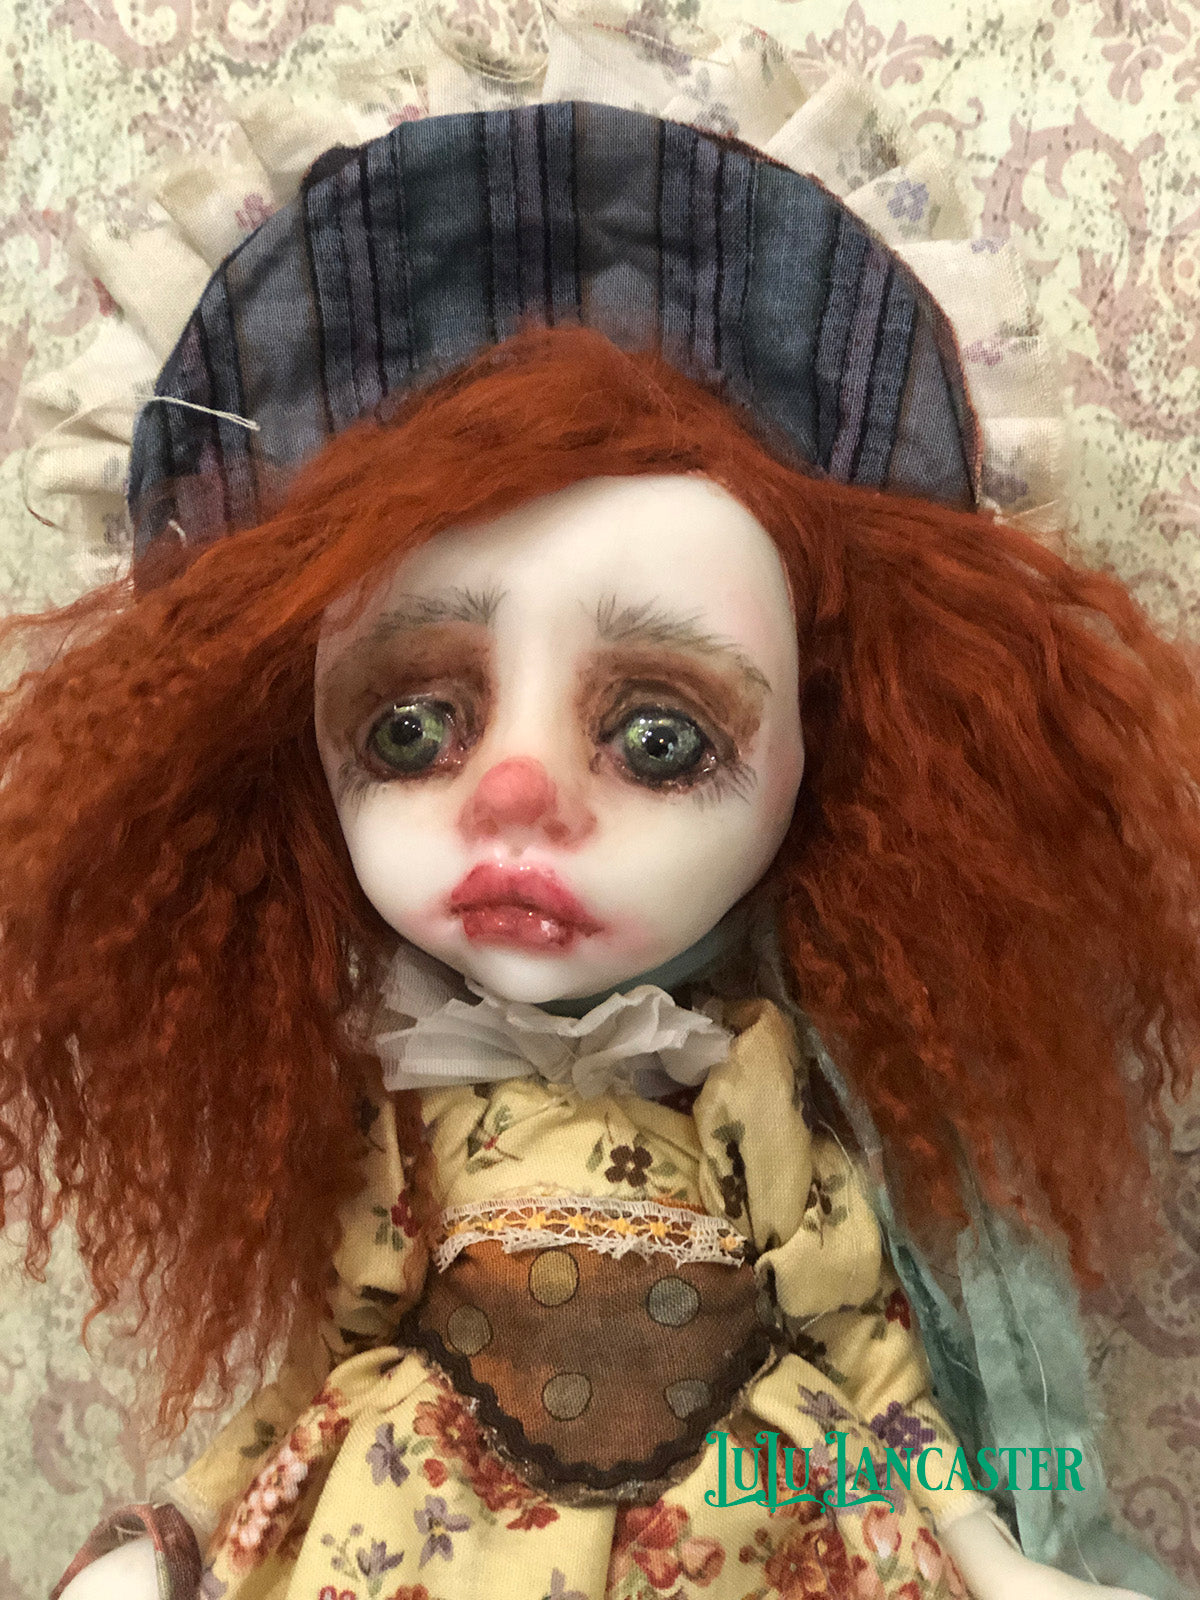 Dear Danielle Original Art Doll One of a kind LuLu Lancaster